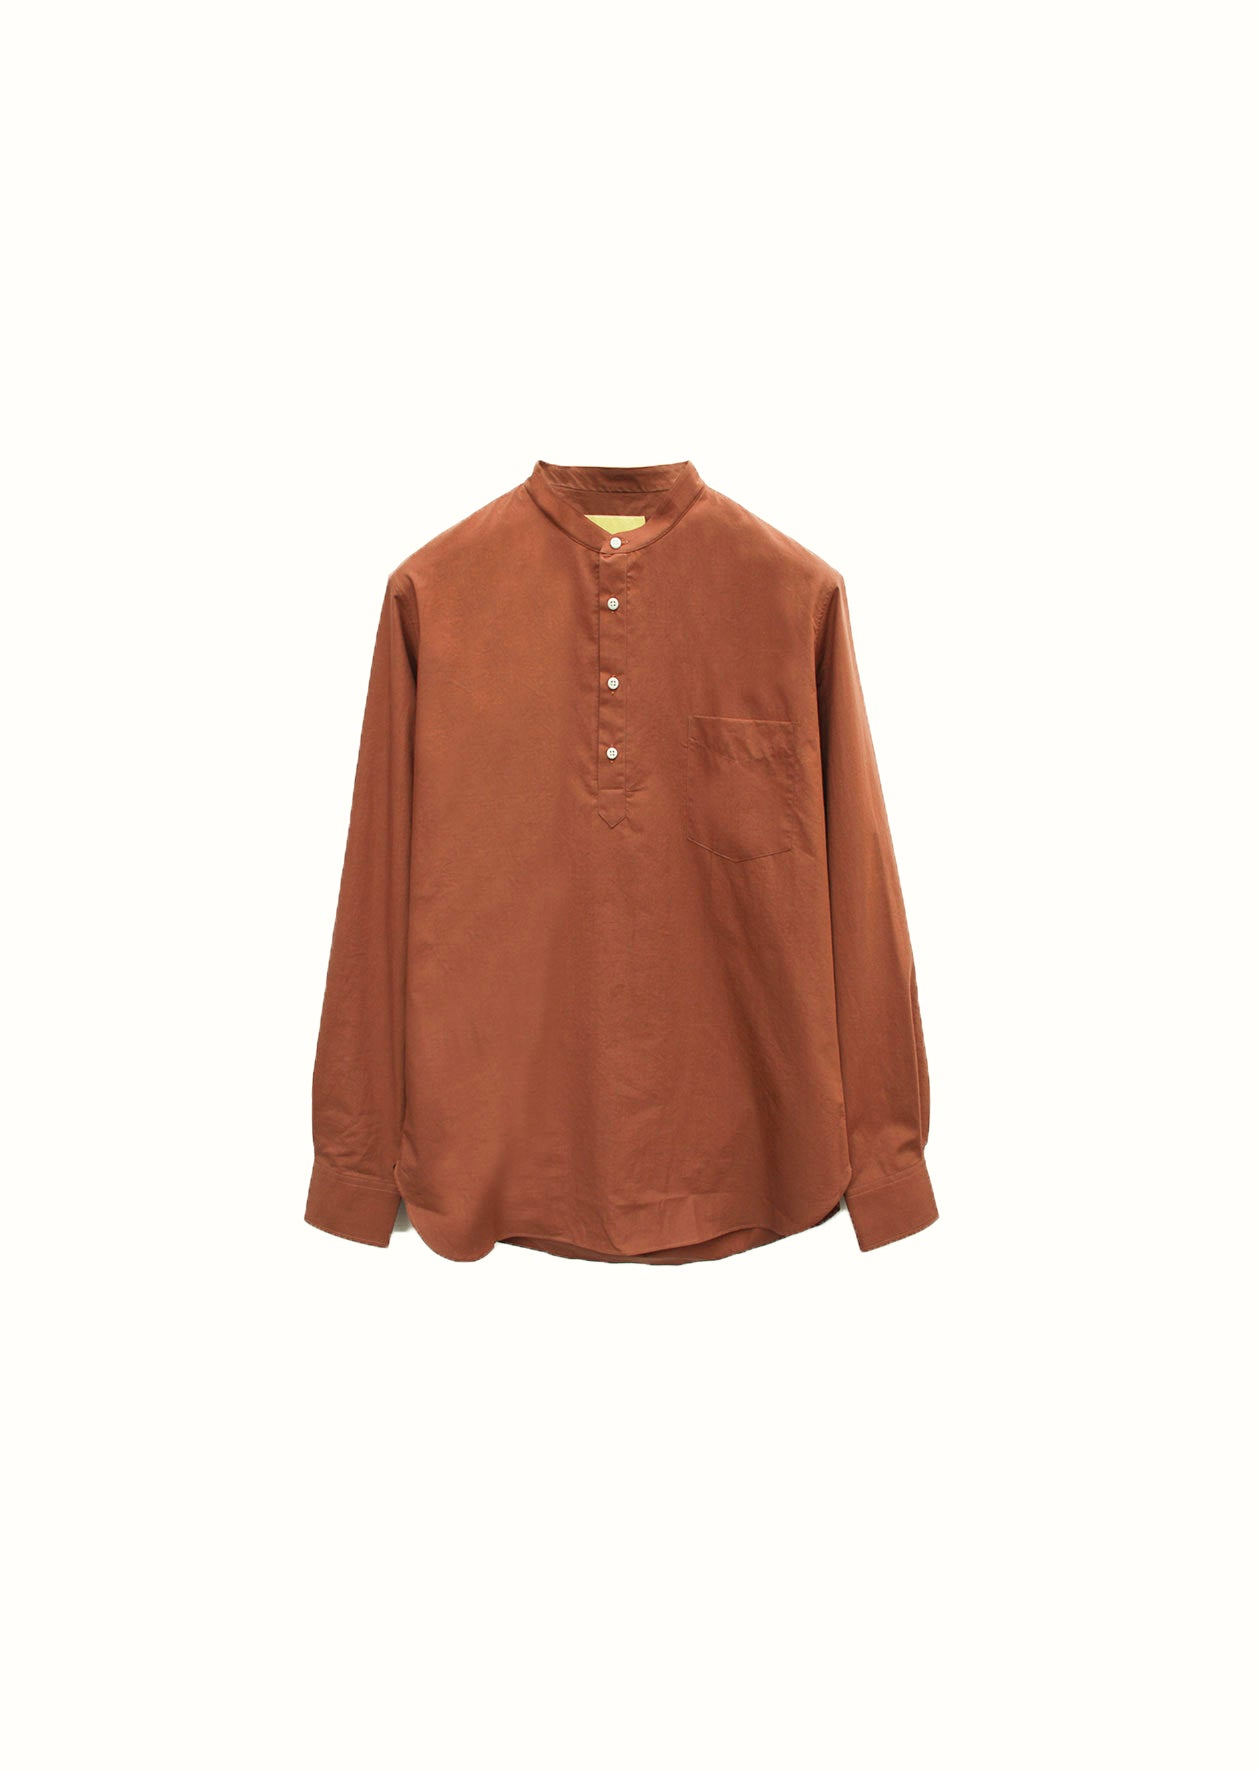 Mao collar popover shirt